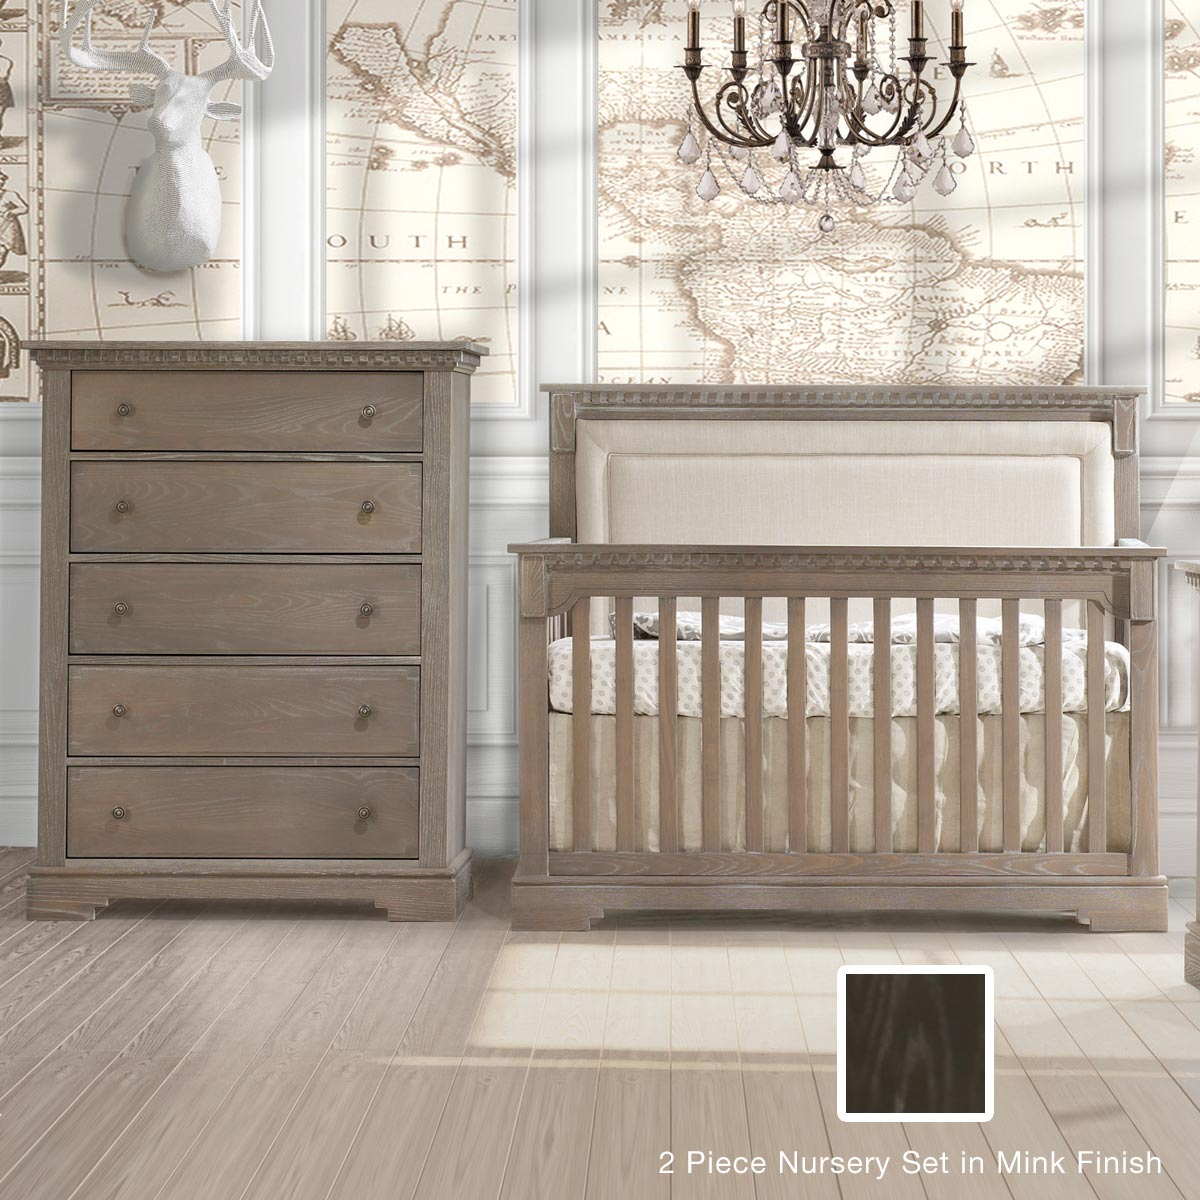 Natart crib for sale - Natart Ithaca 2 Piece Nursery Set 4 In 1 Convertible Crib And 5 Drawer Dresser In Mink Free Shipping